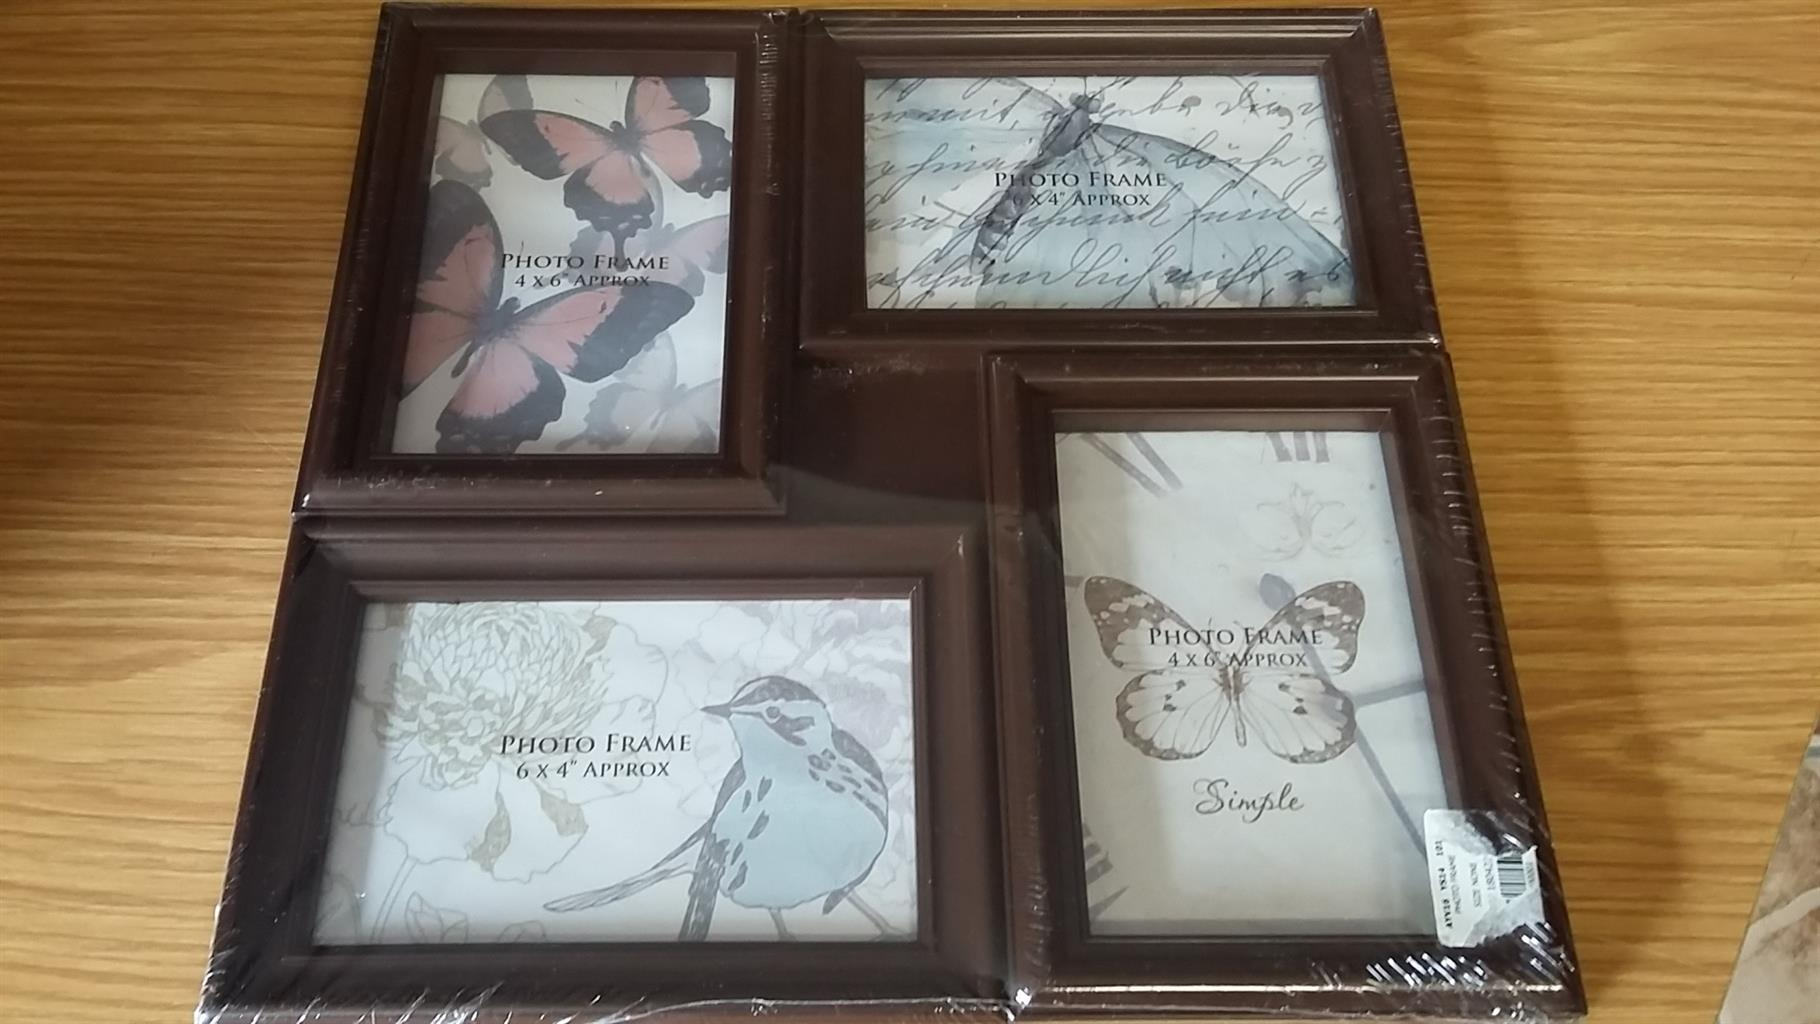 Photo frames for sale